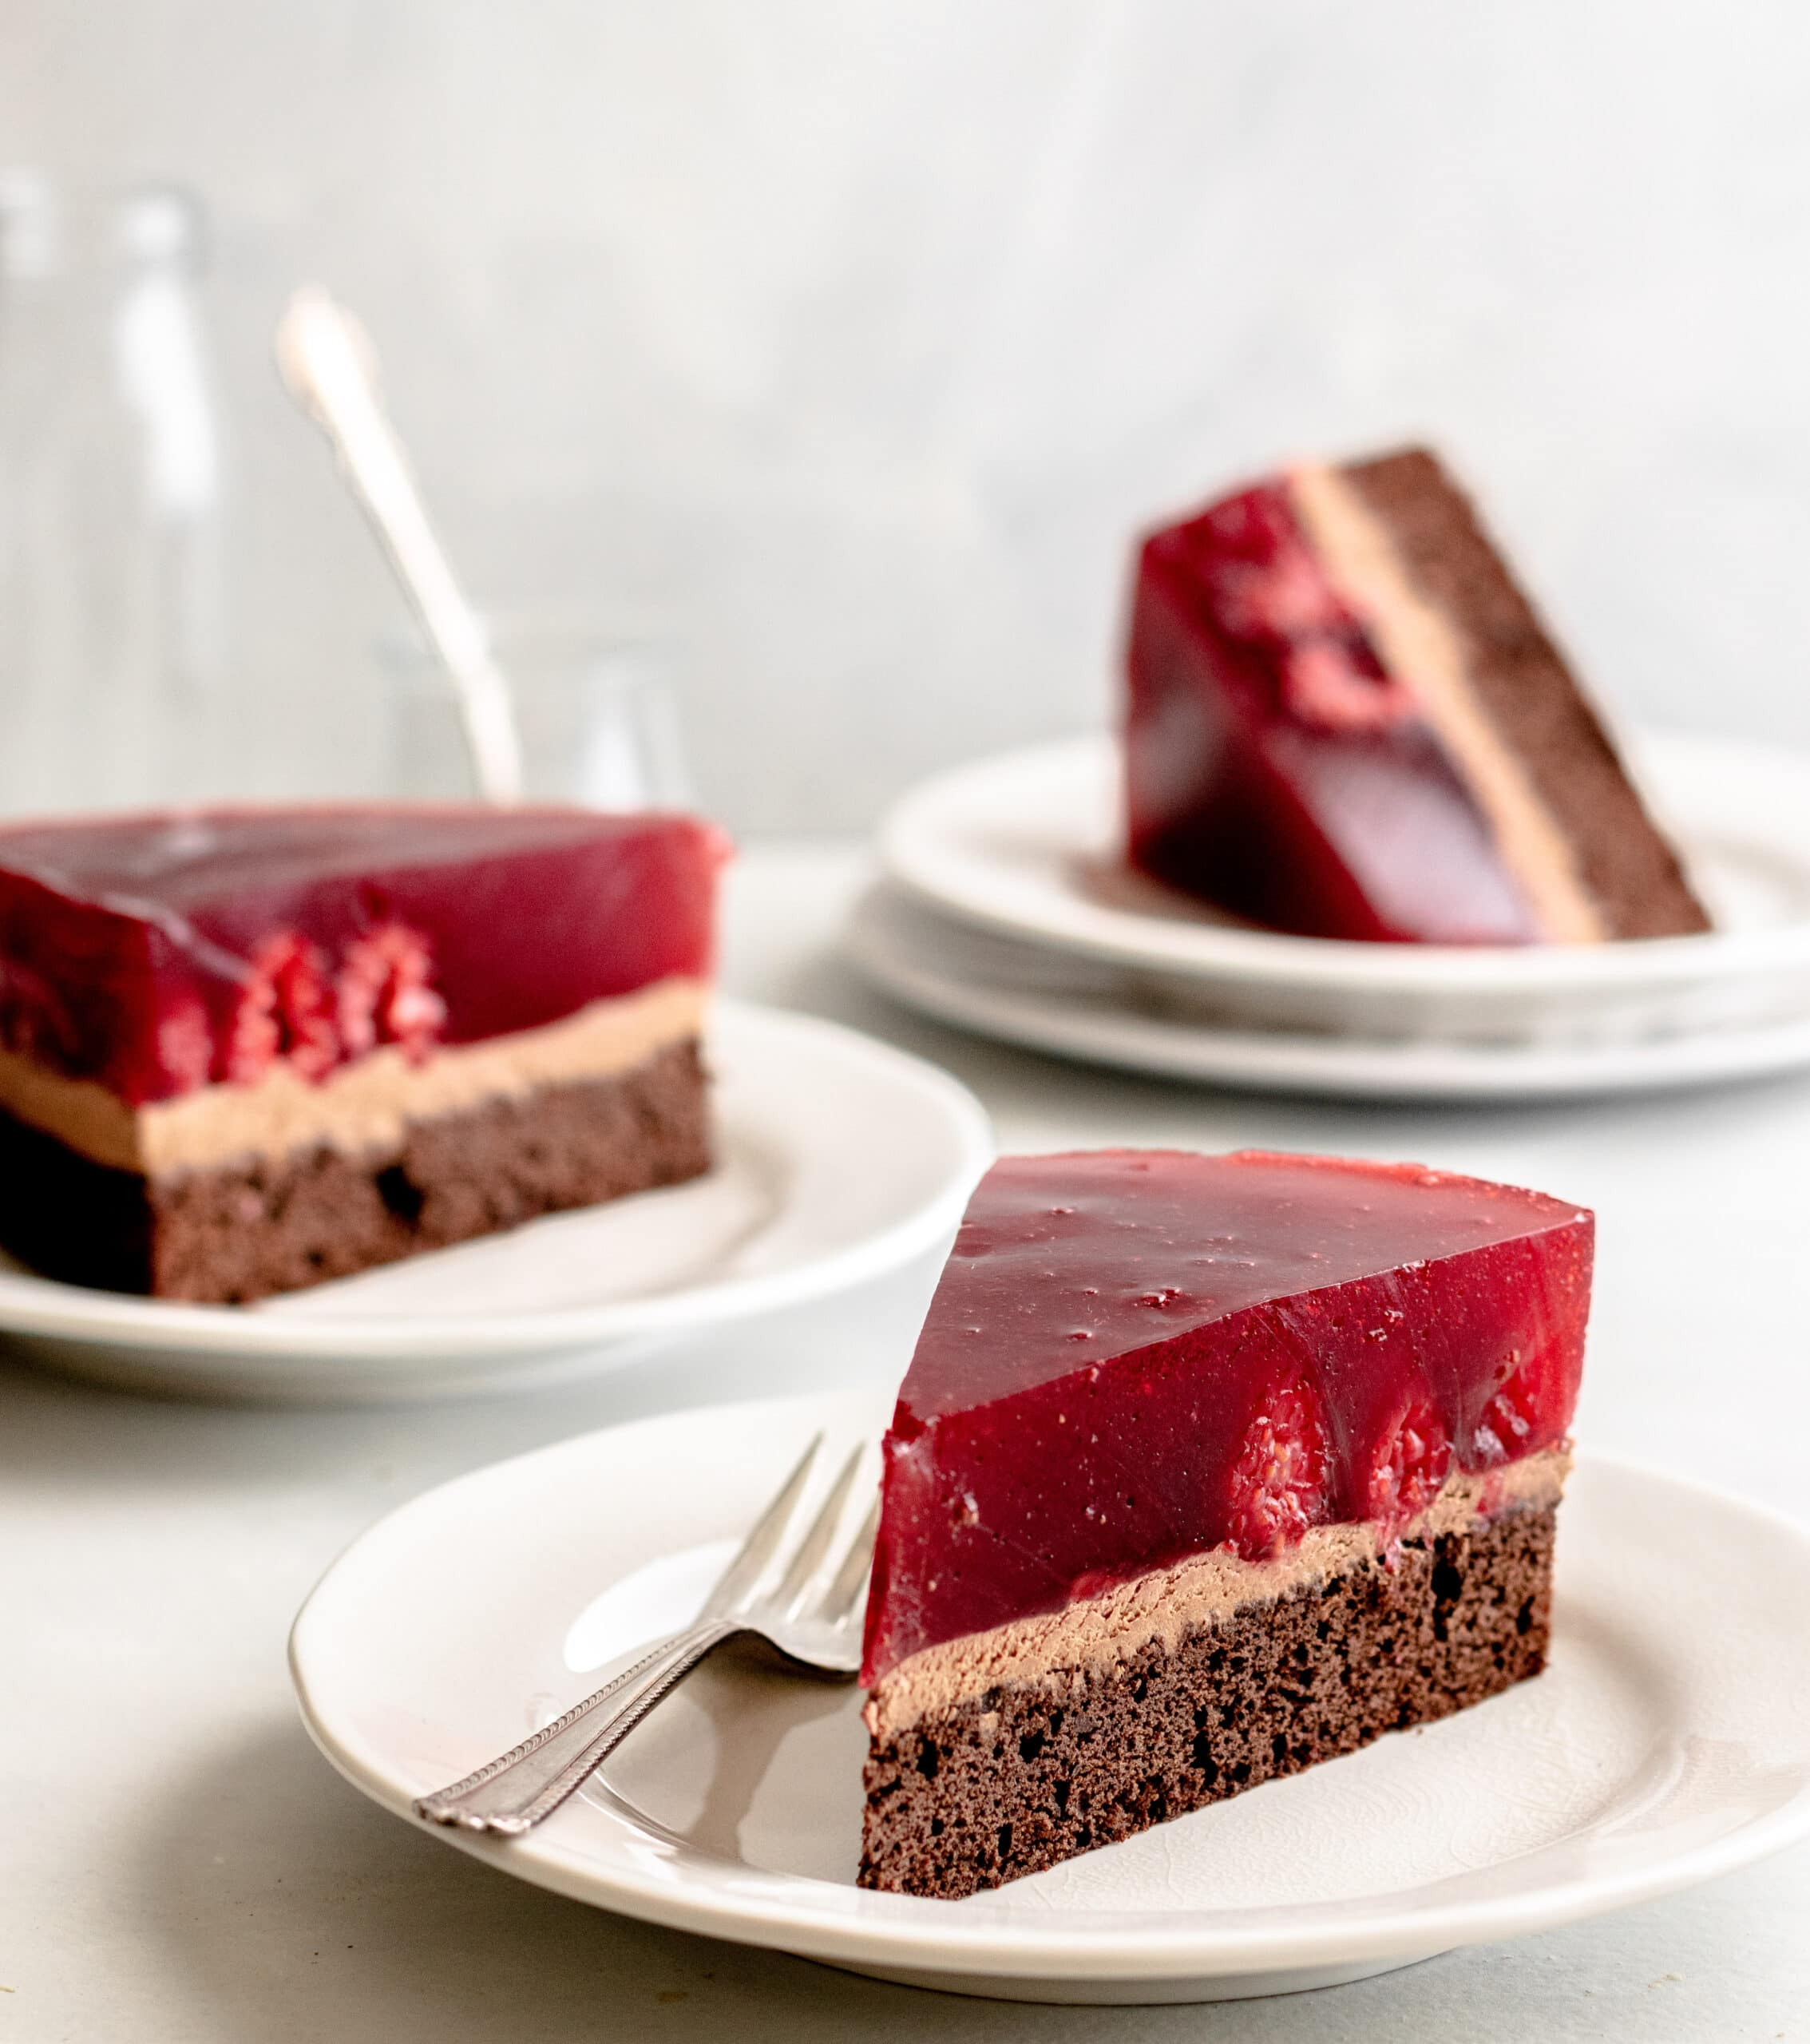 Image of chocolate raspberry cake slices on a white plate.